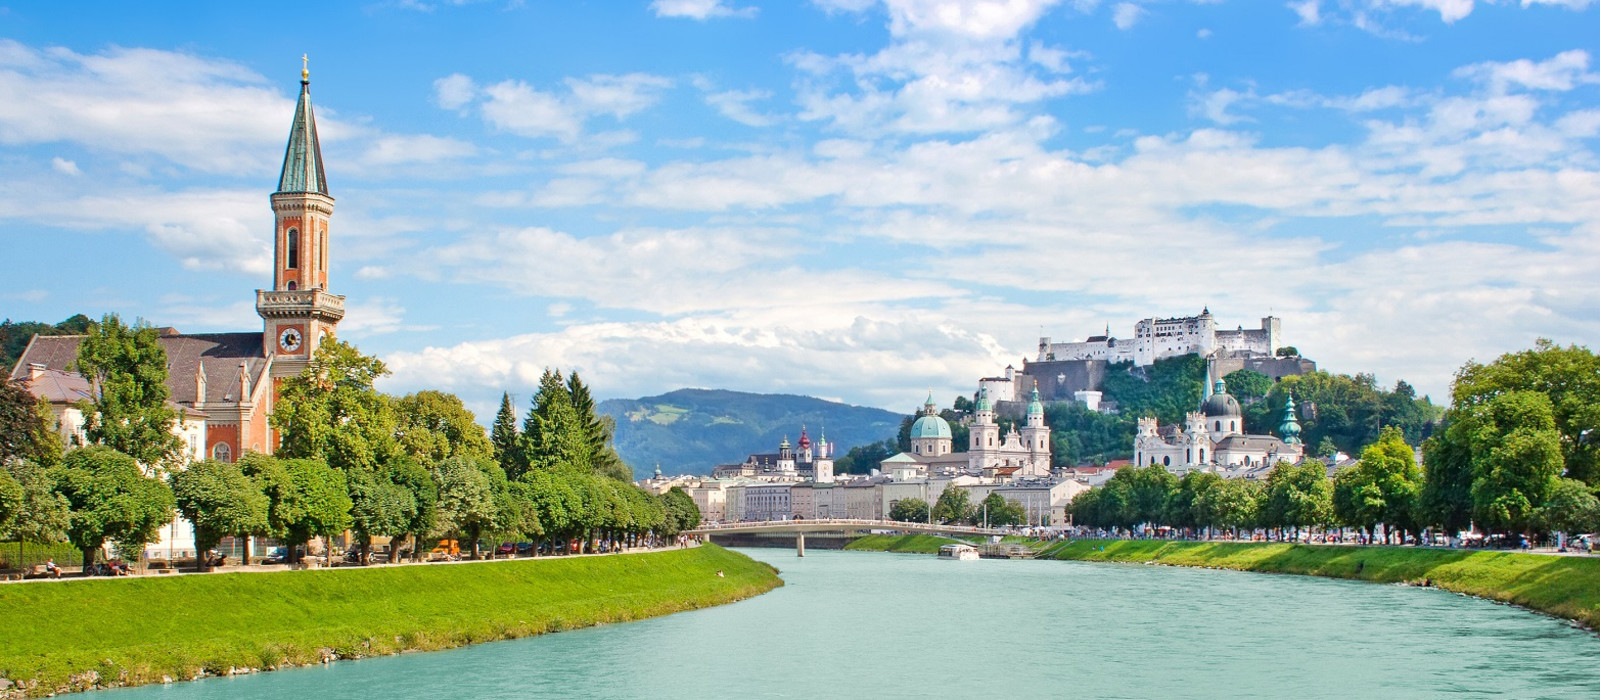 Austria and Germany: Heritage Sites Tour Trip 1